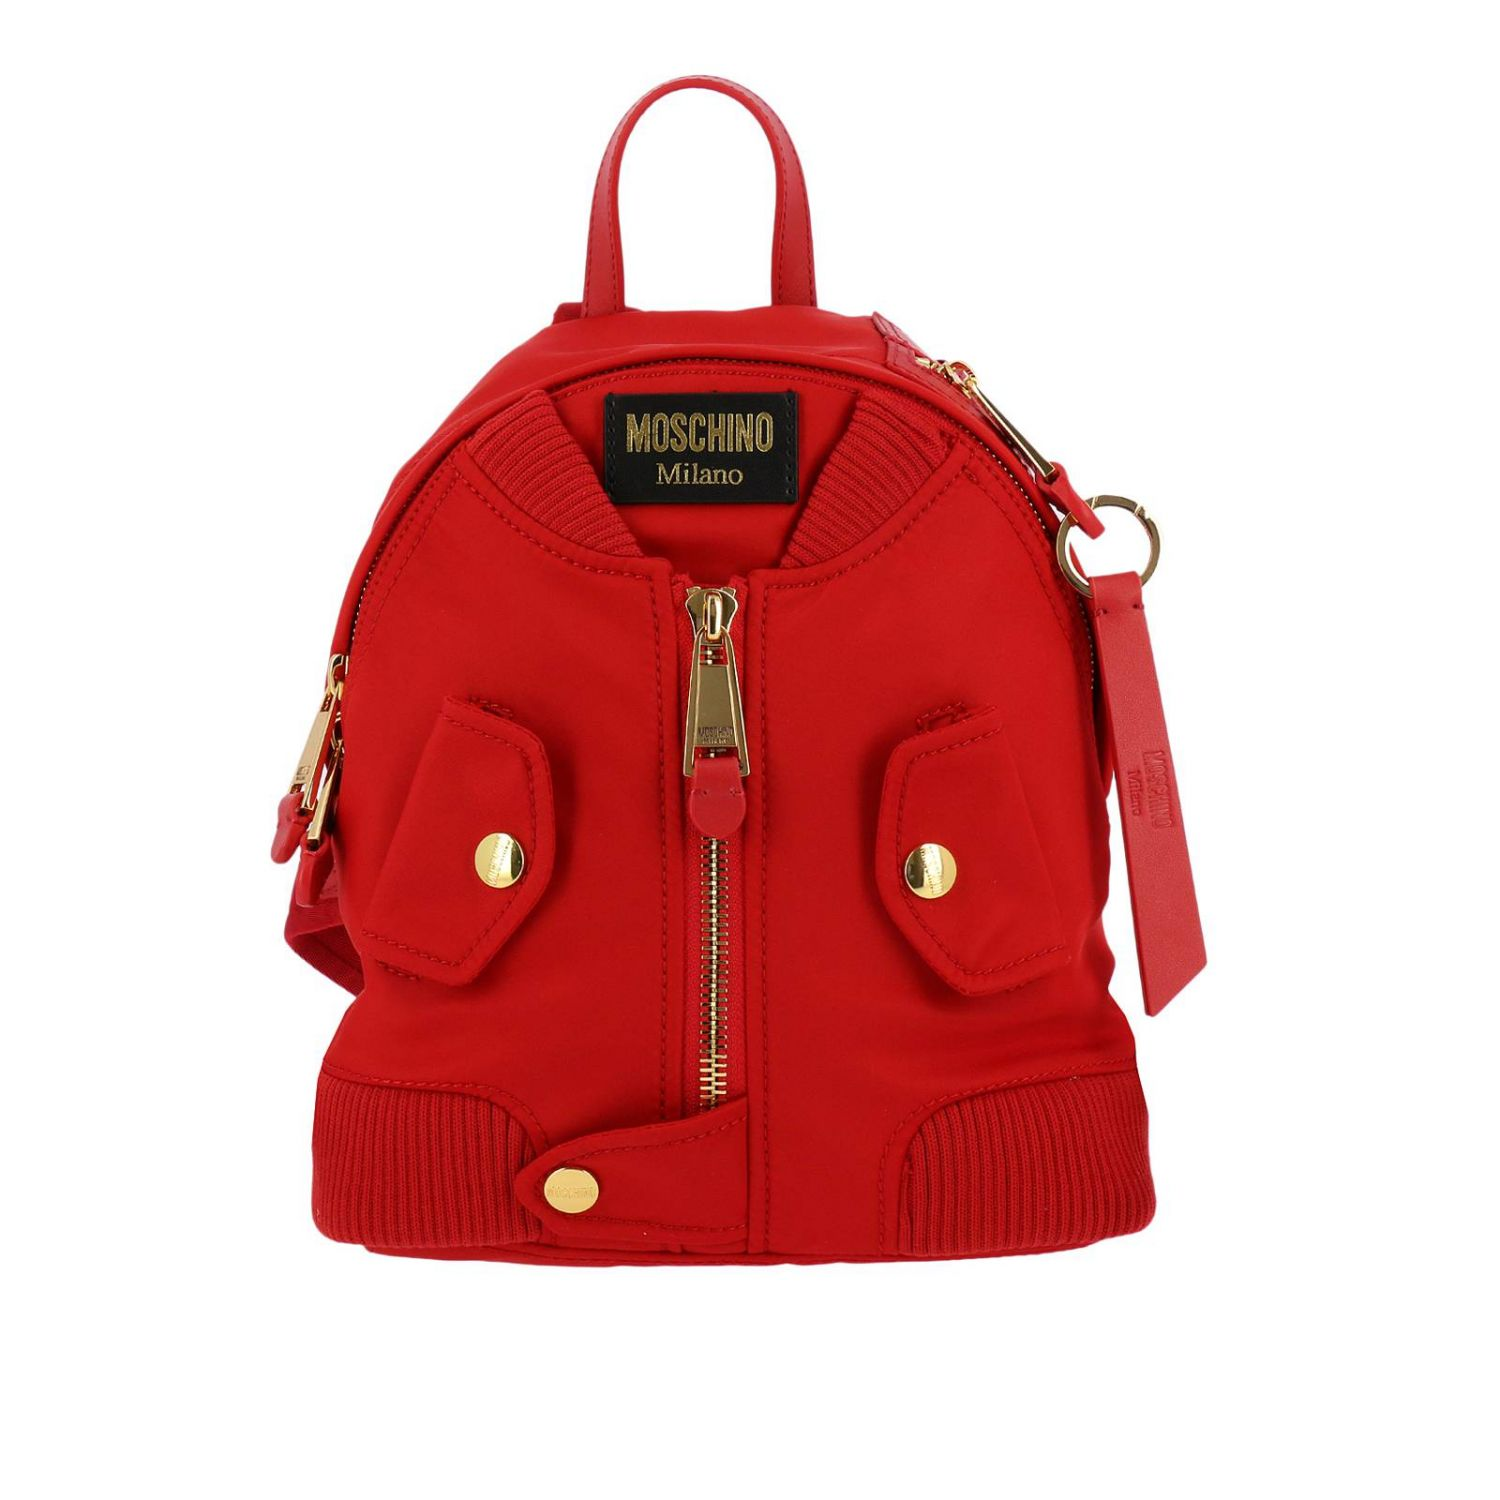 Backpack Shoulder Bag Women Moschino Couture 8292254